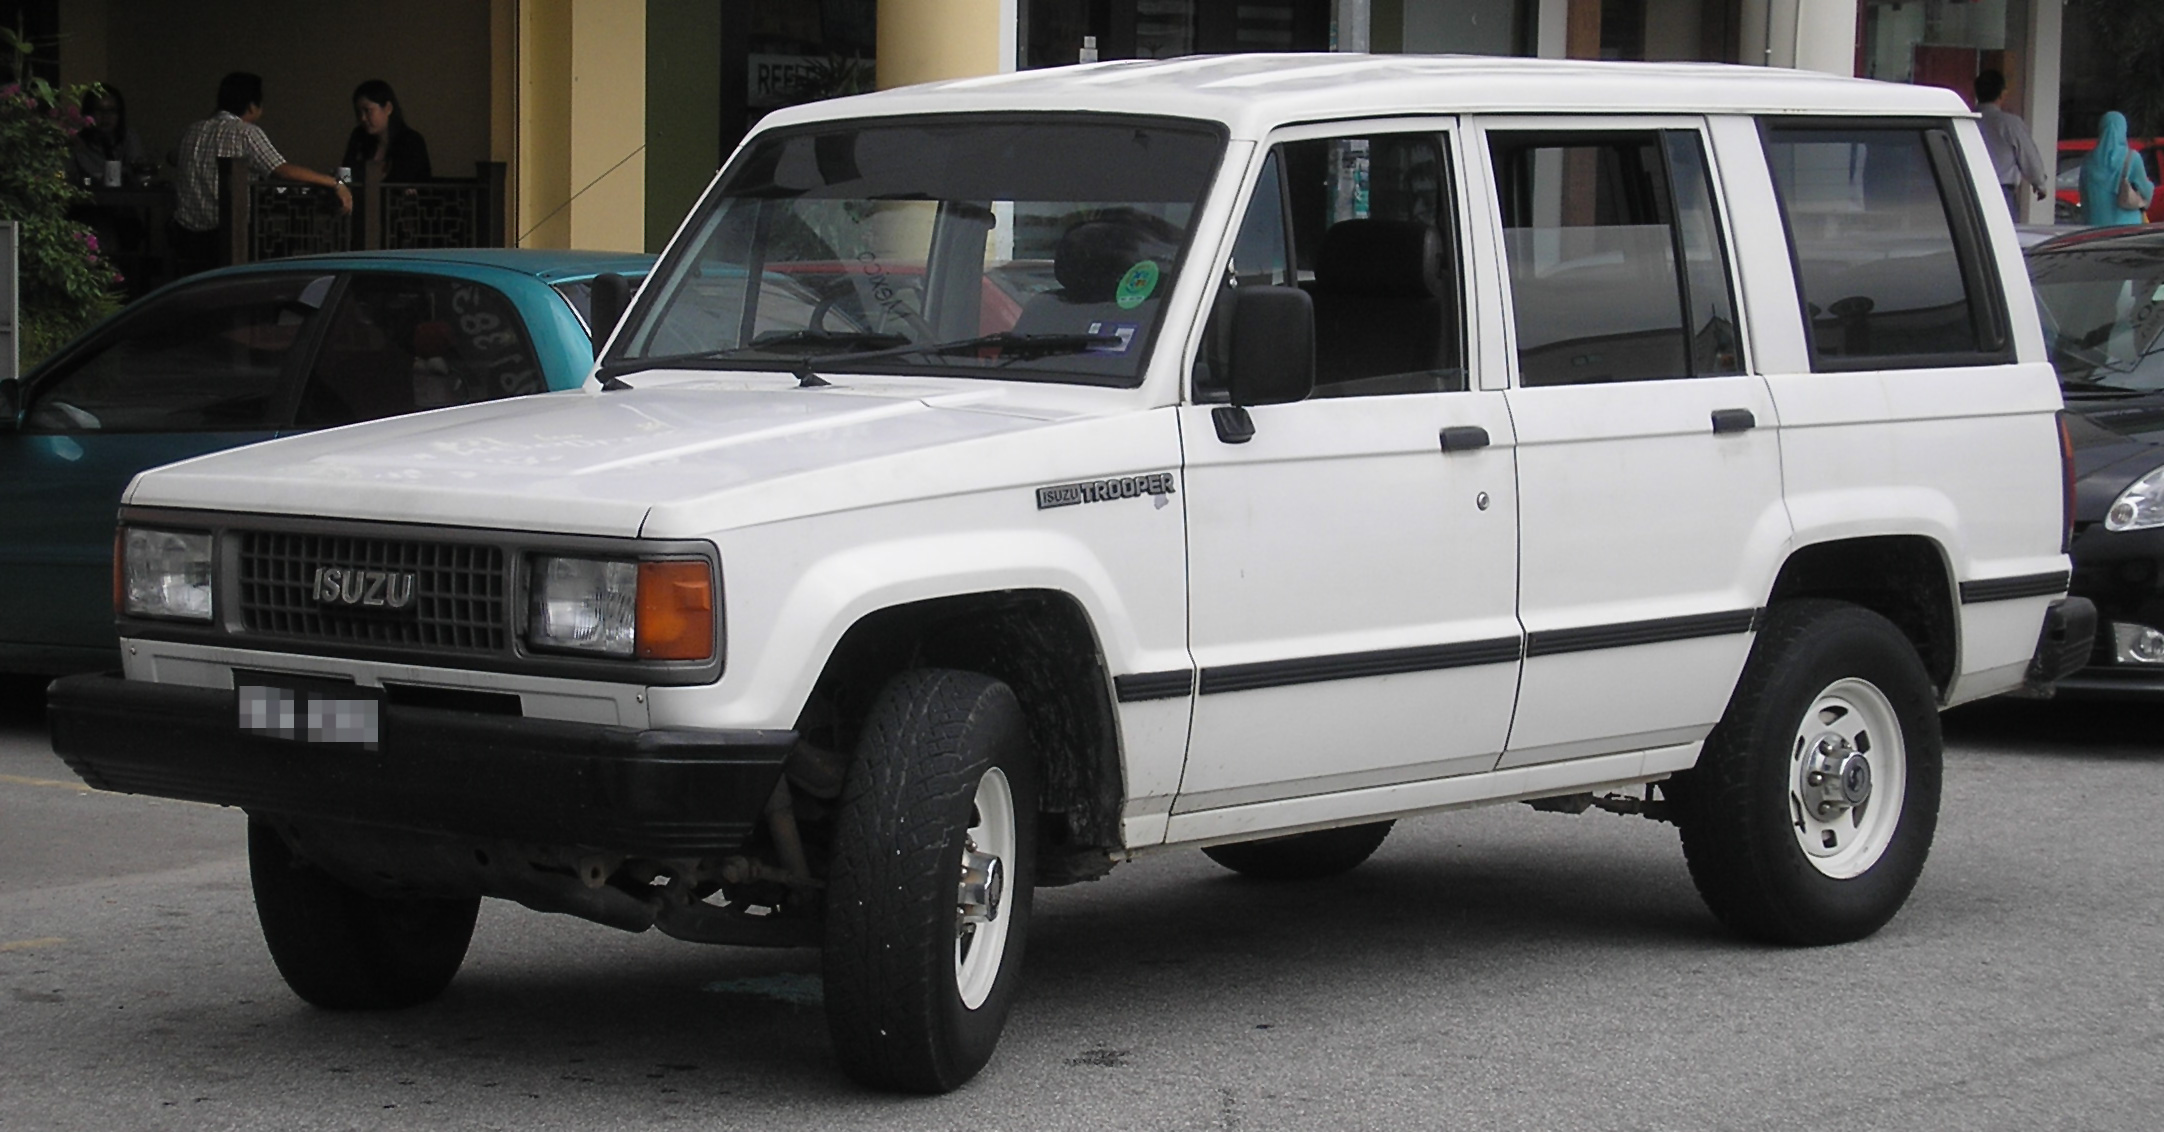 Isuzu Trooper - Wikipedia, the free encyclopedia